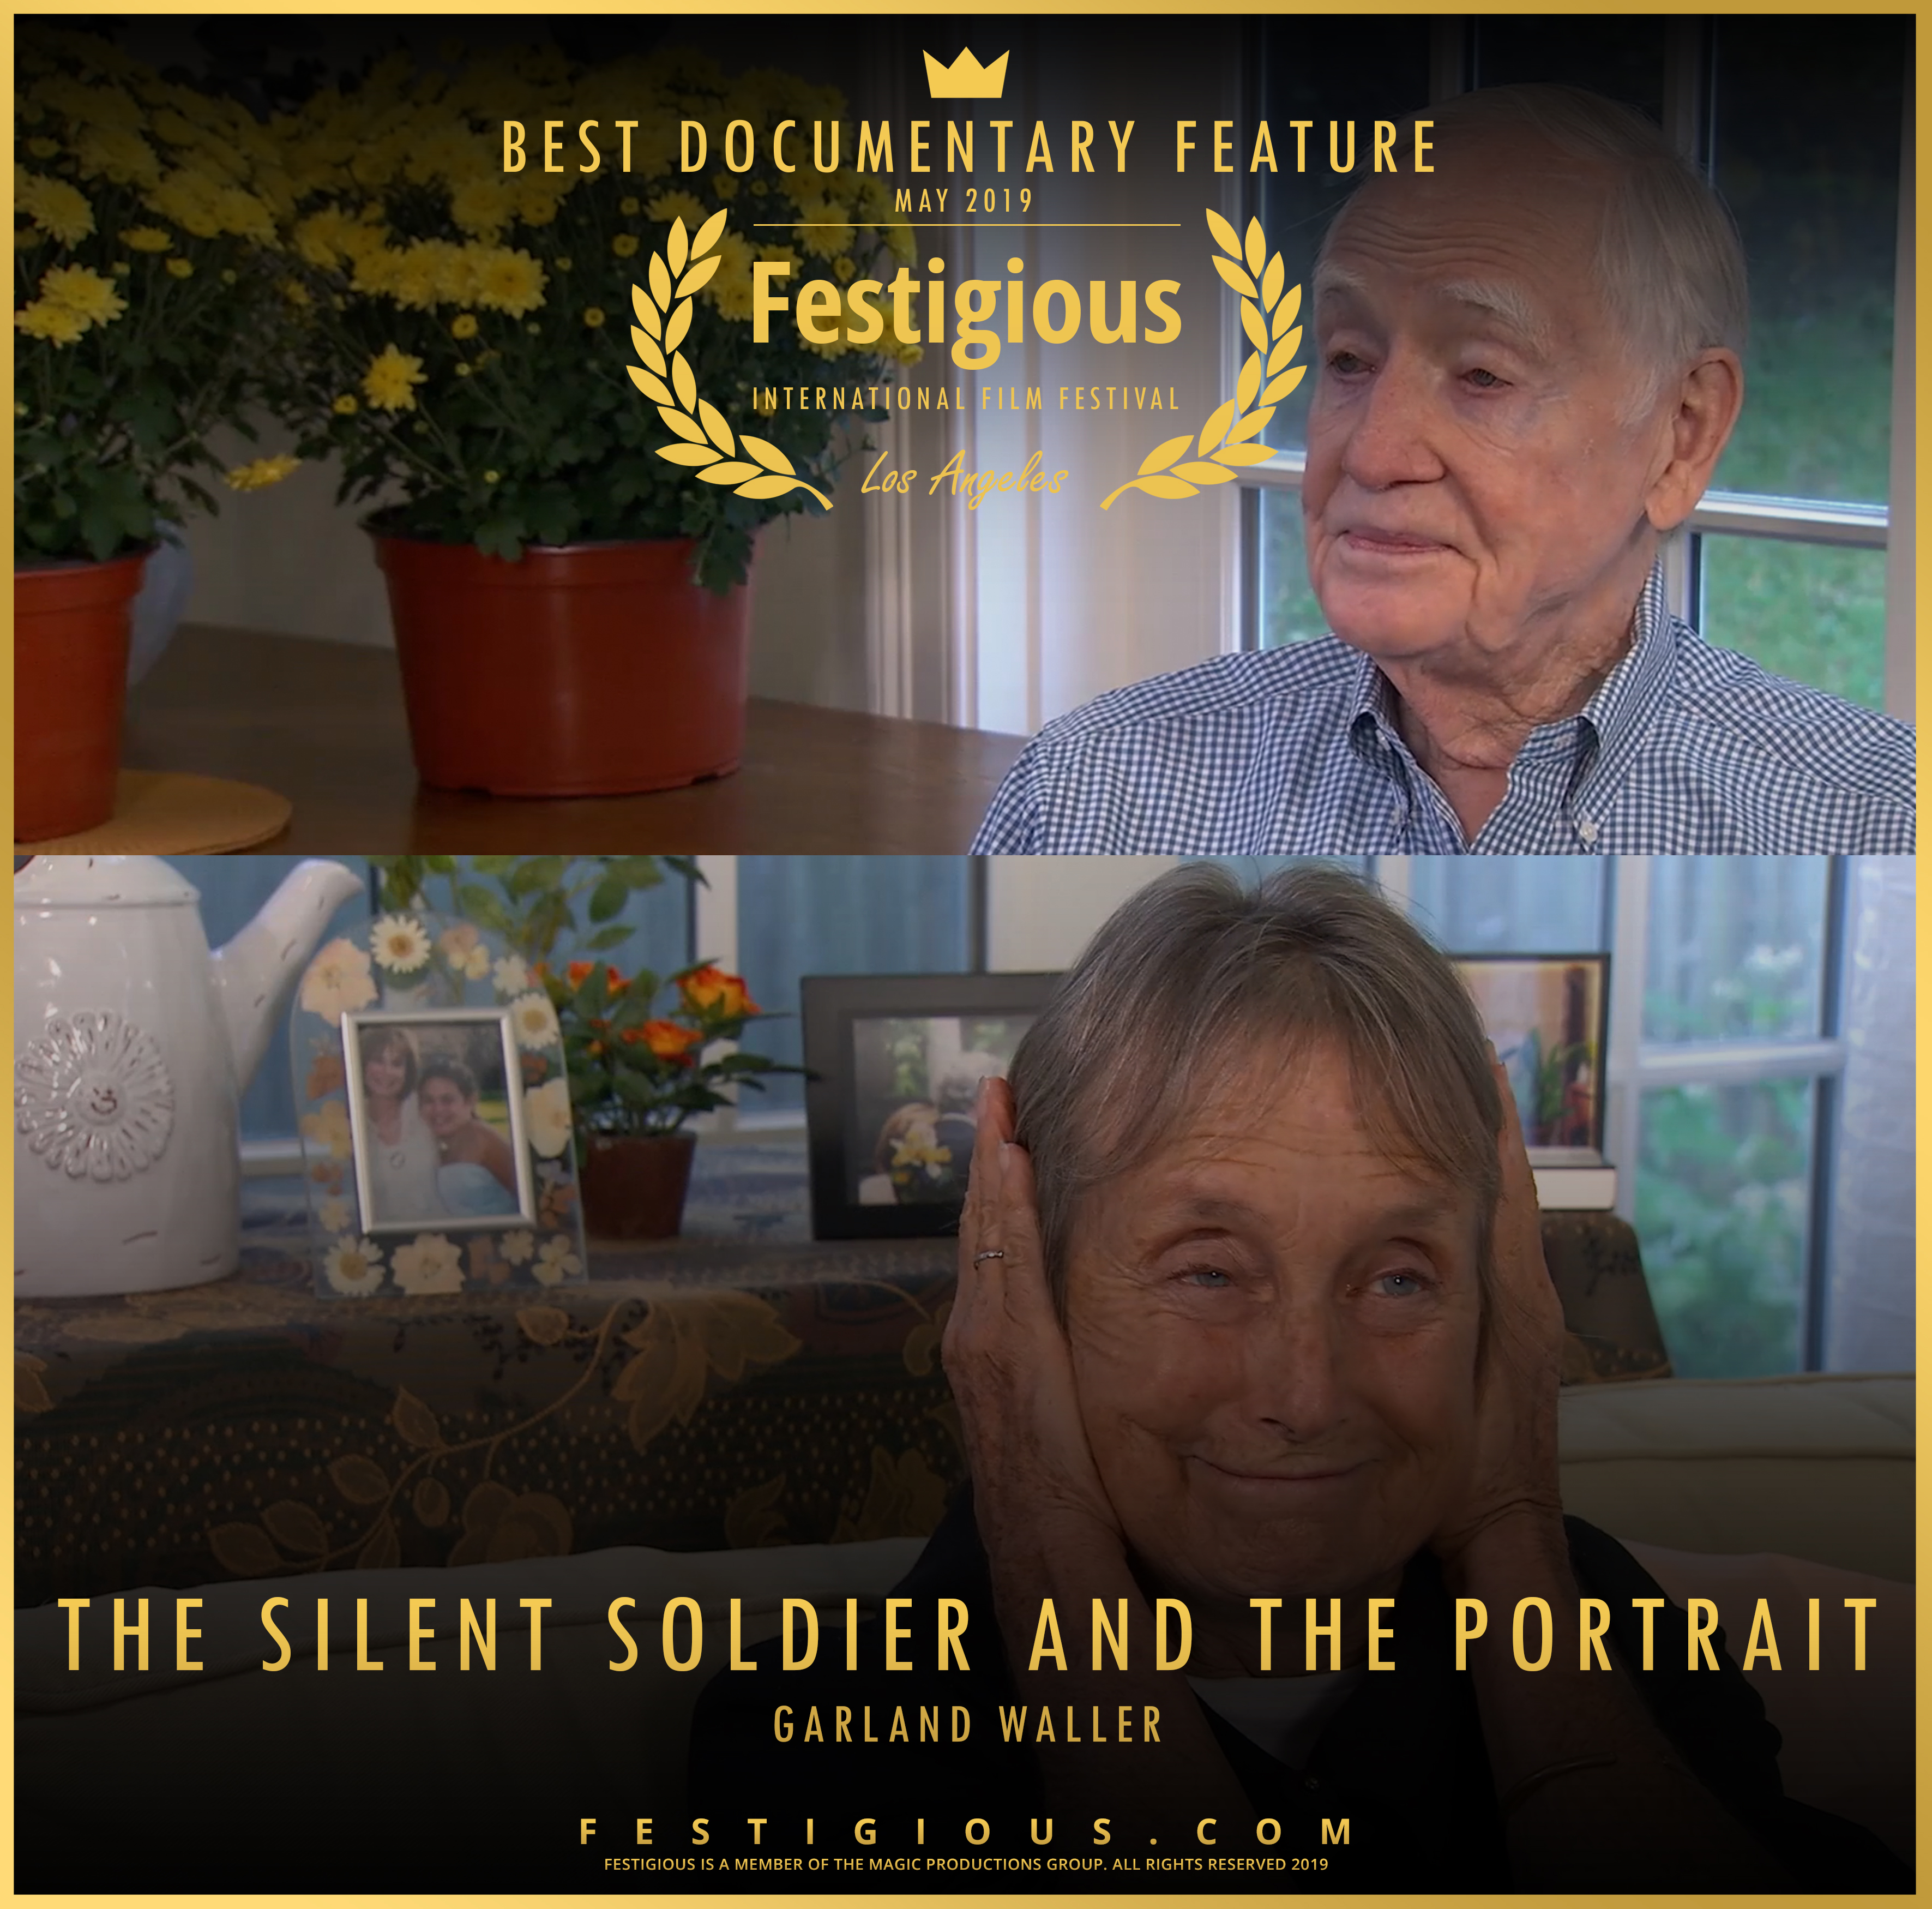 THE SILENT SOLDIER AND THE PORTRAIT desi